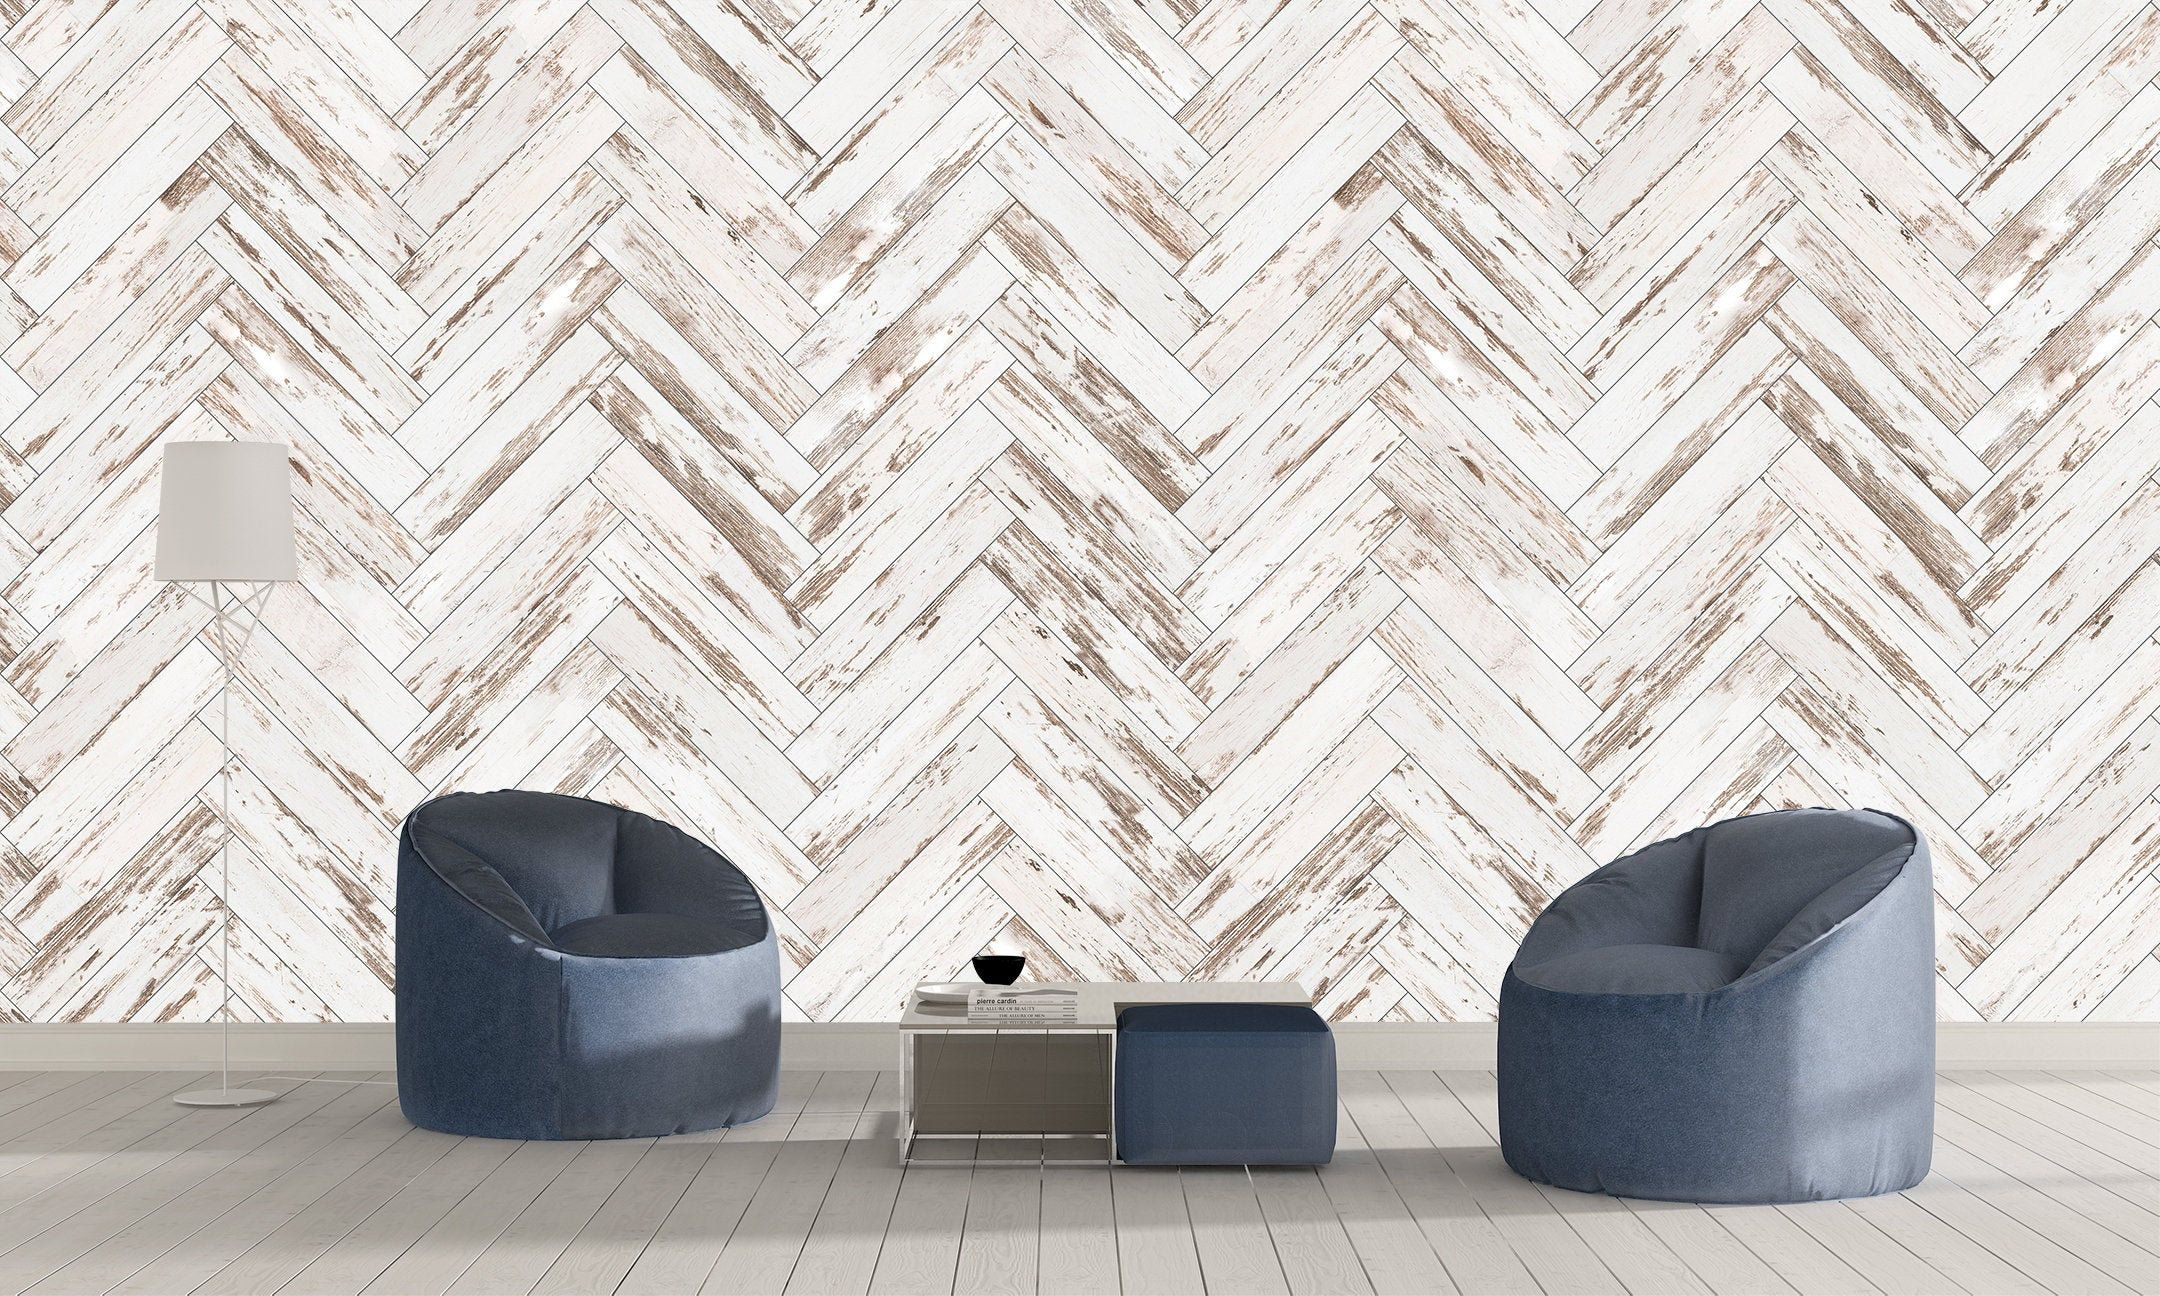 Peel And Stick Wallpaper Removable Wallpaper Self Adhesive Etsy Peel And Stick Wallpaper Removable Wallpaper Self Adhesive Wallpaper